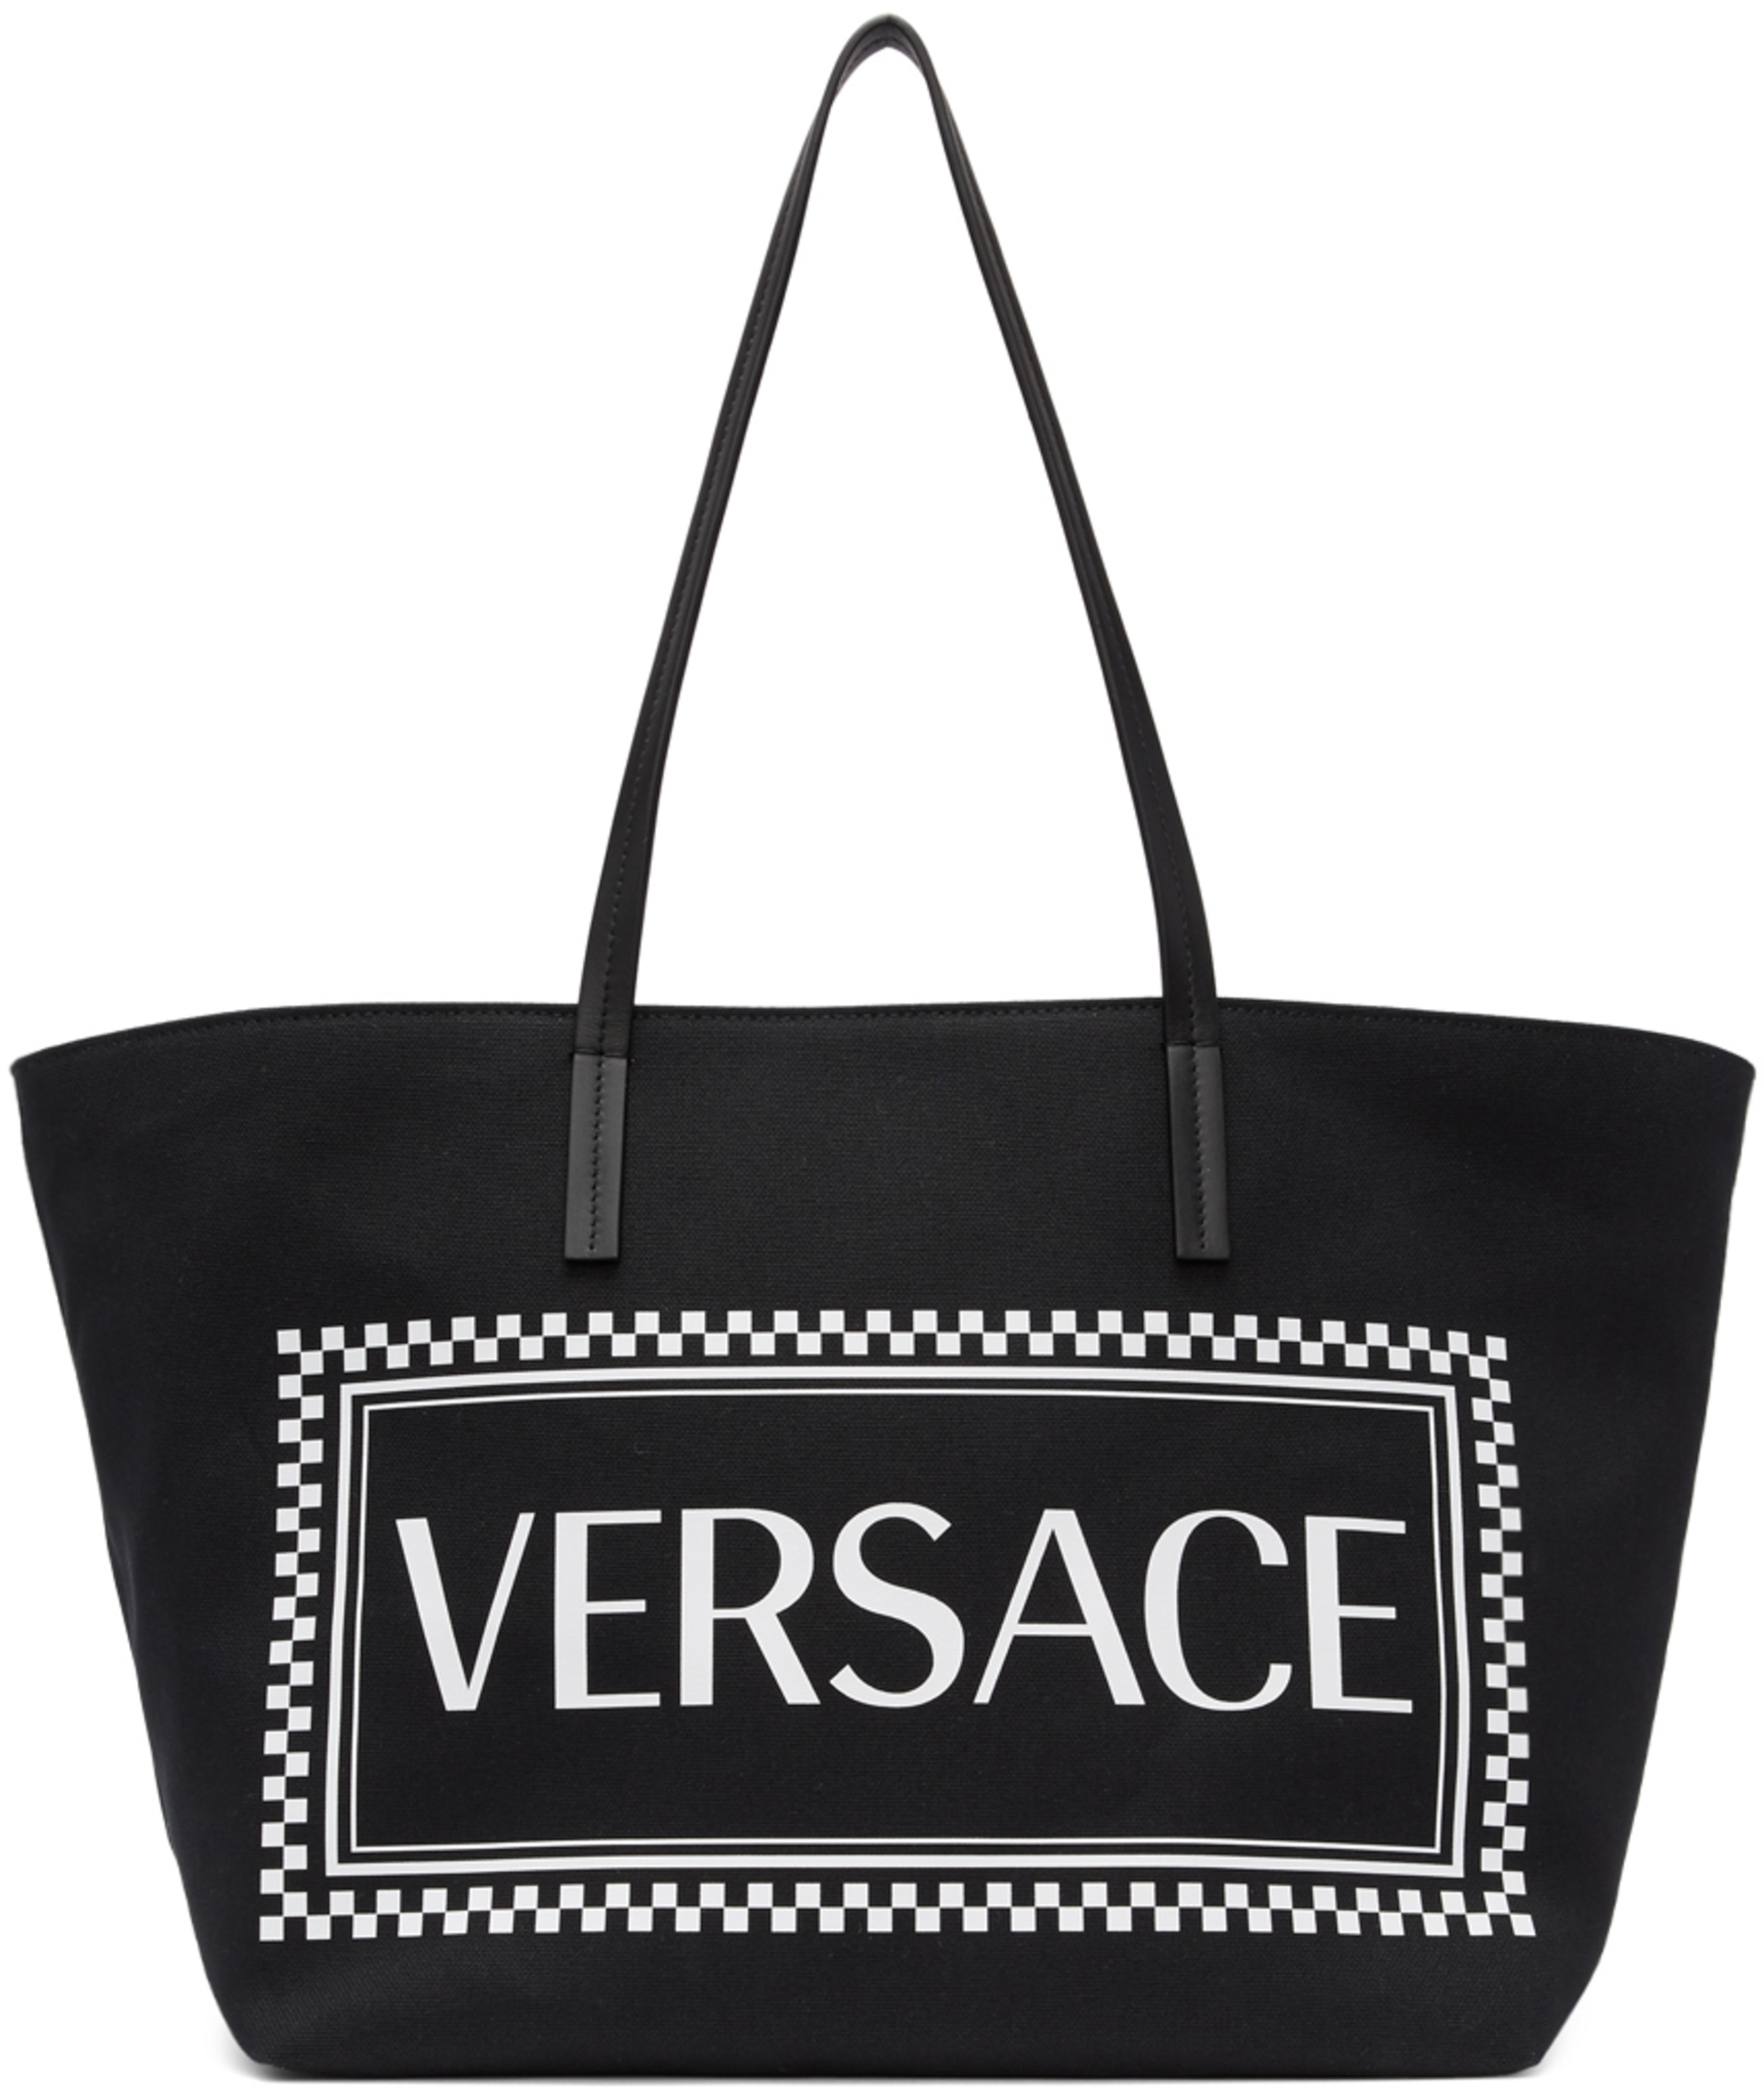 dc35a807ee49 Versace bags for Women